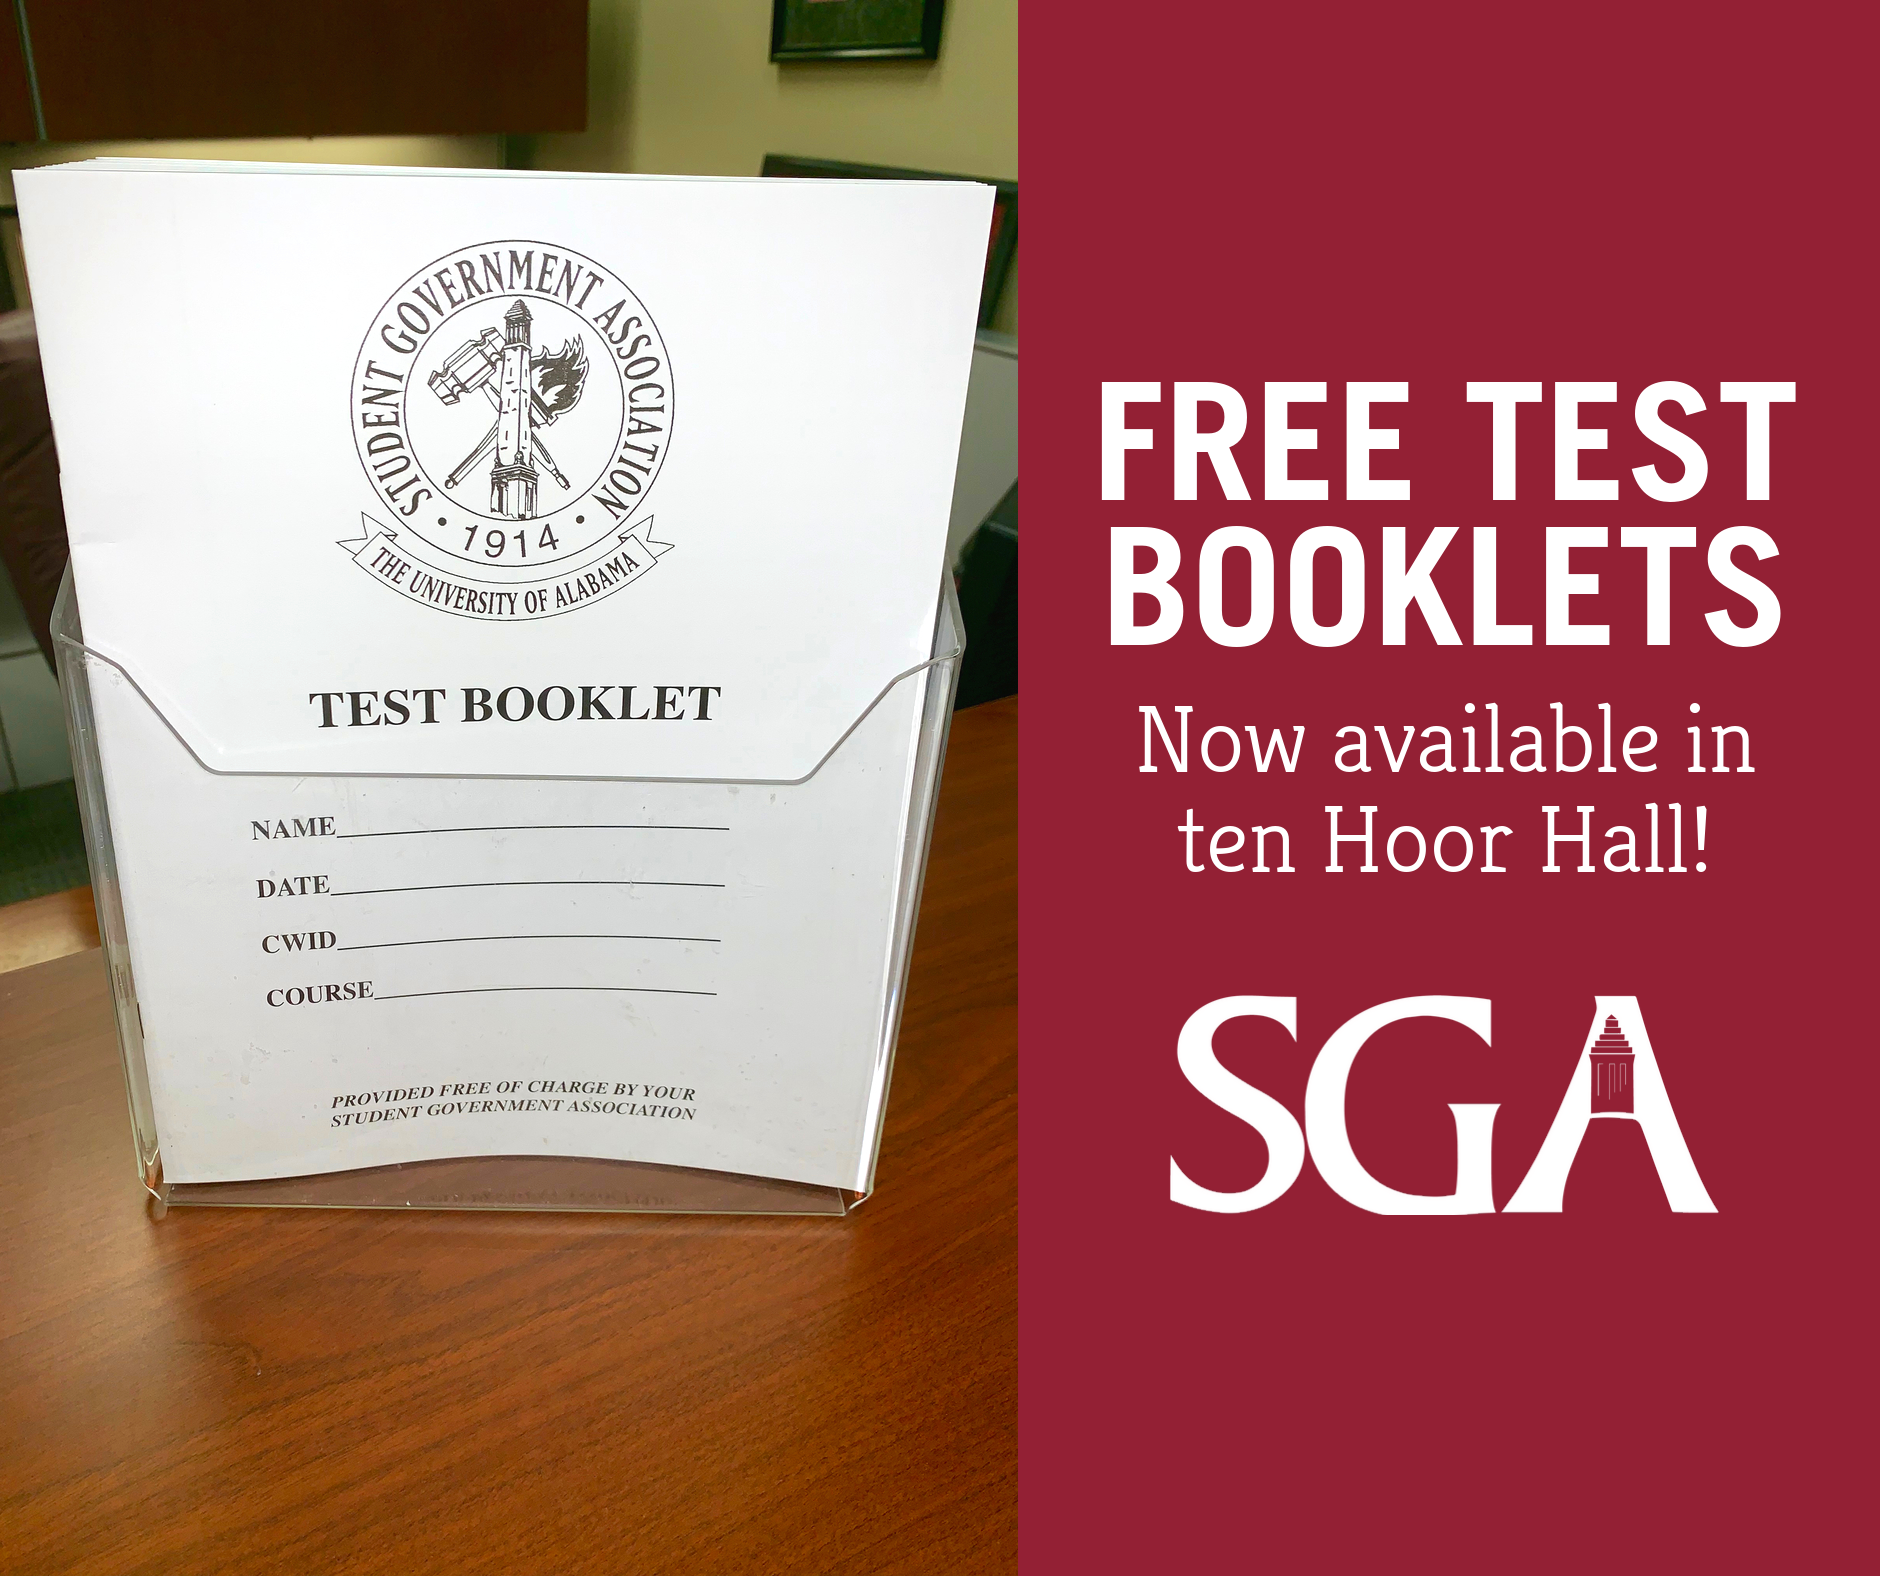 SGA is now providing free test booklets in ten Hoor Hall